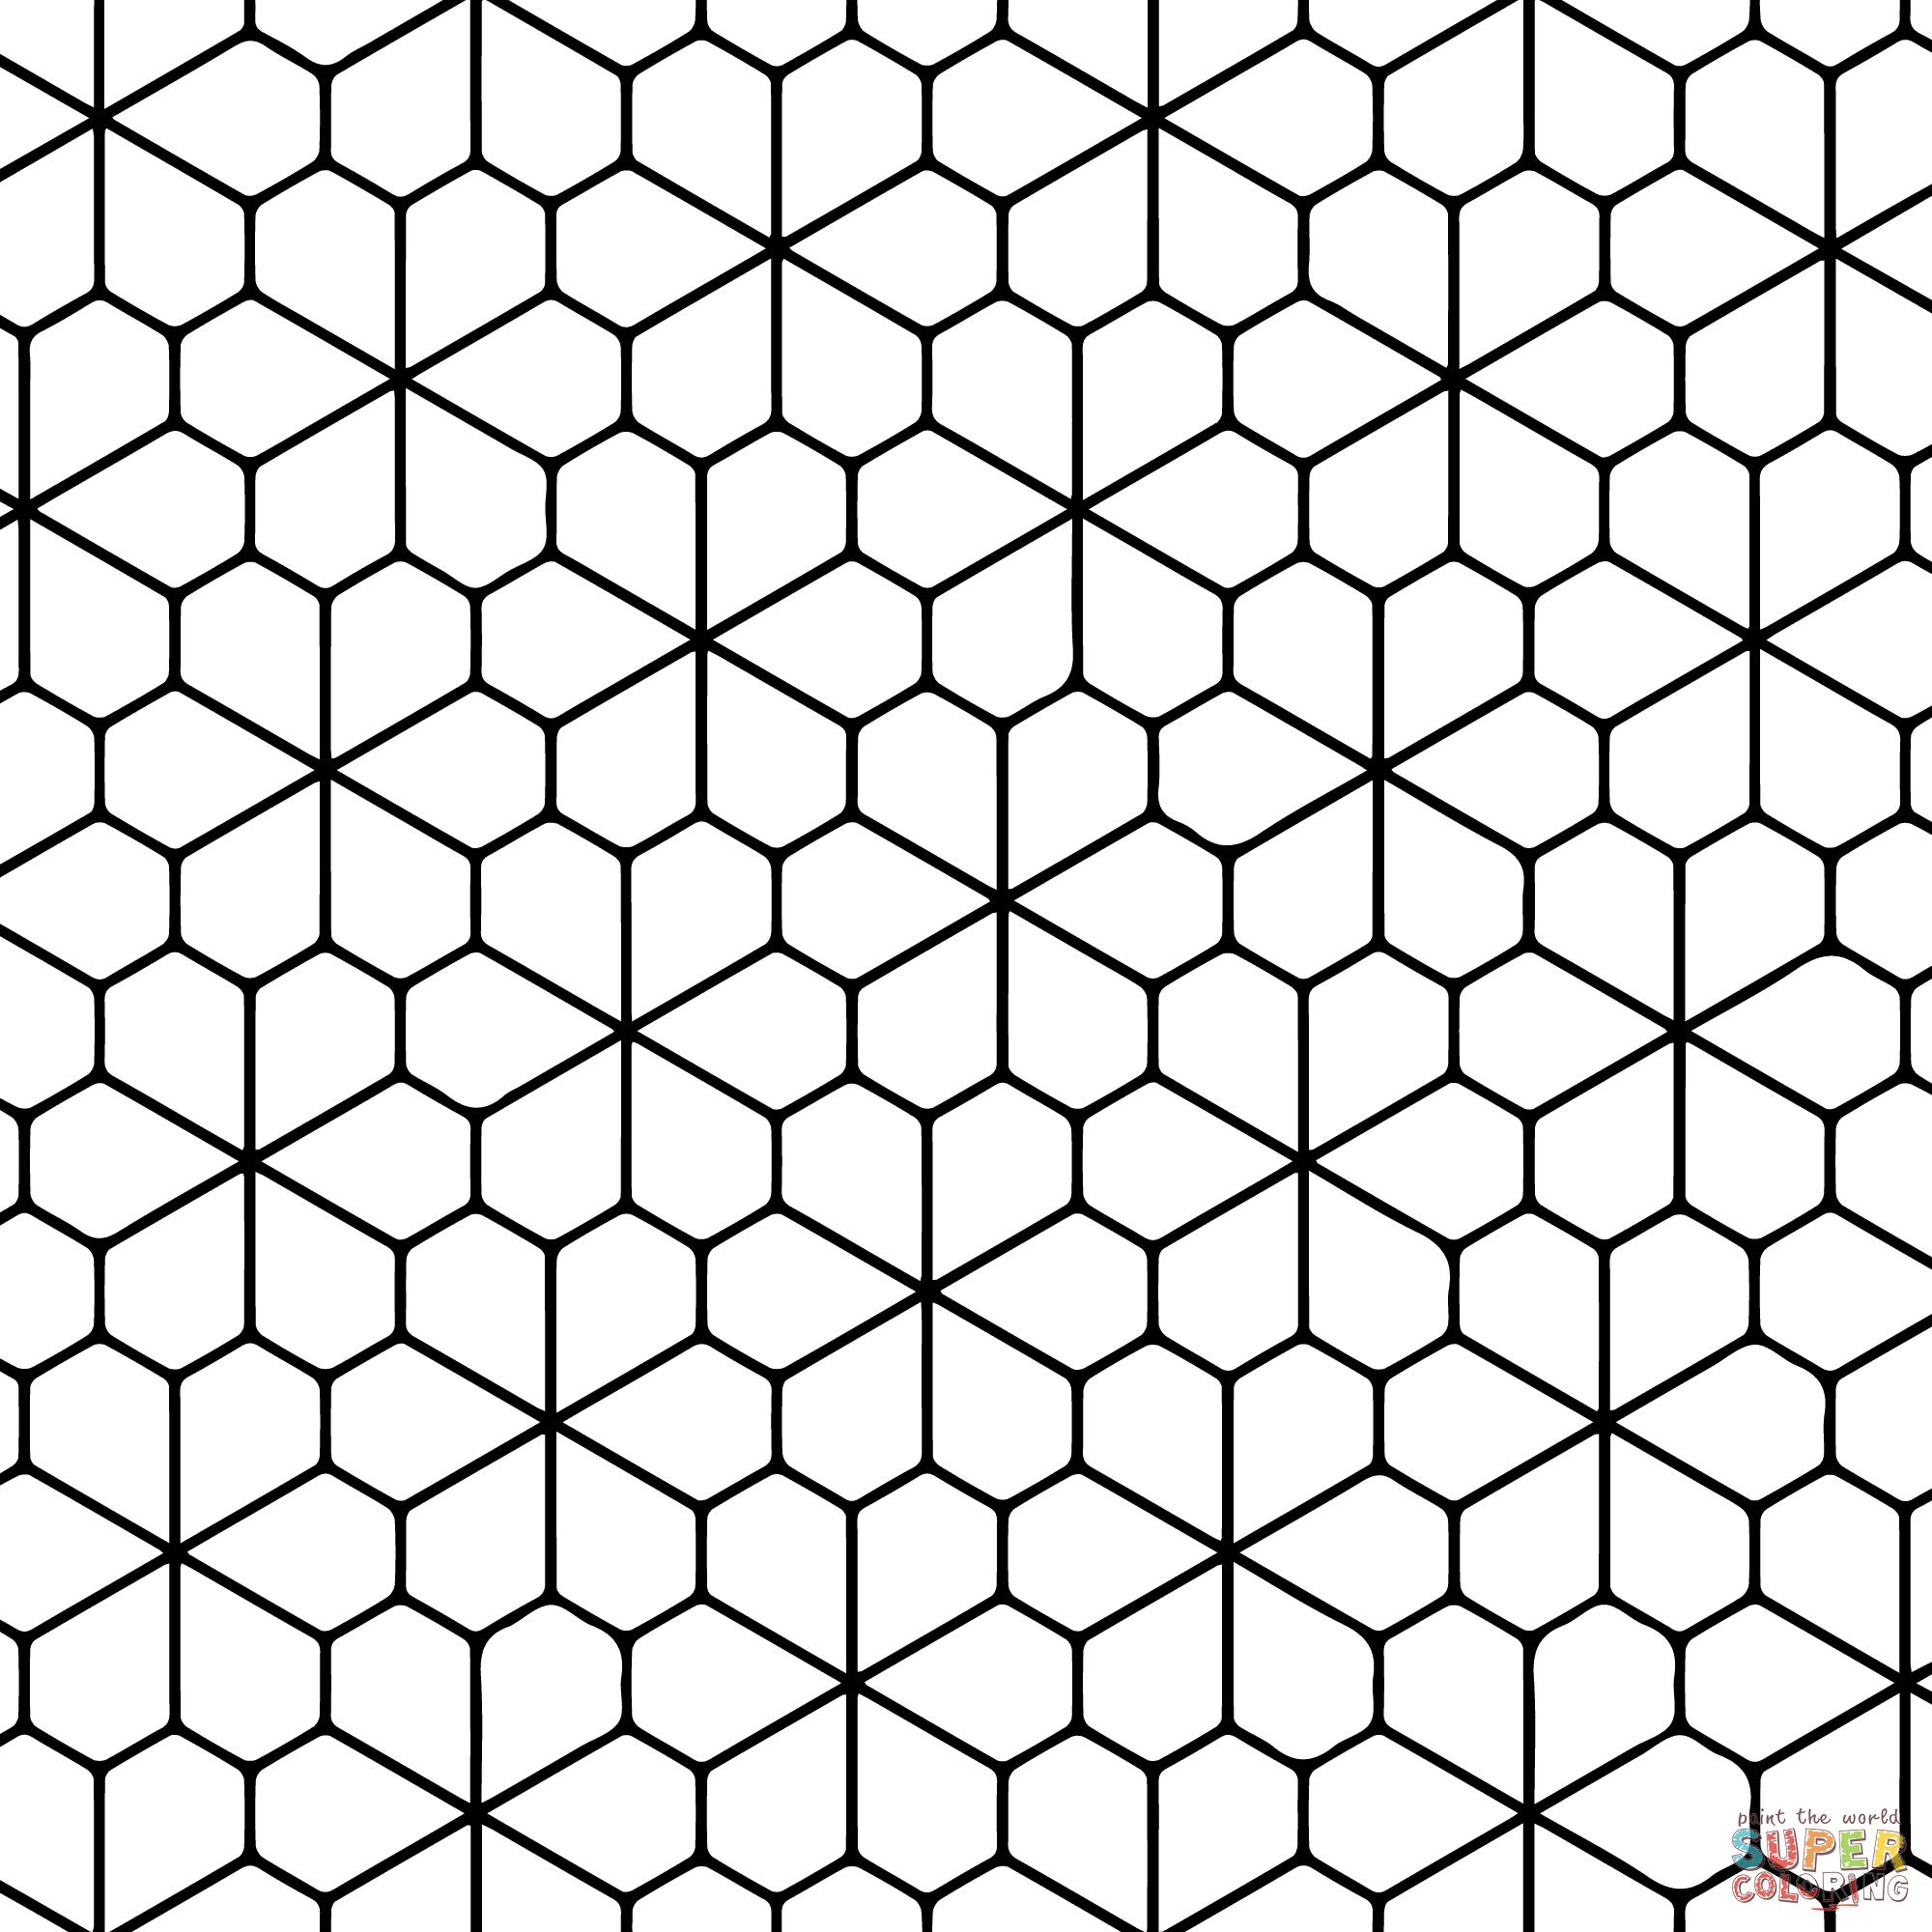 Worksheets Tessellation Worksheets To Color tessellation with floret pentagonal tiling coloring page from patterns coloring